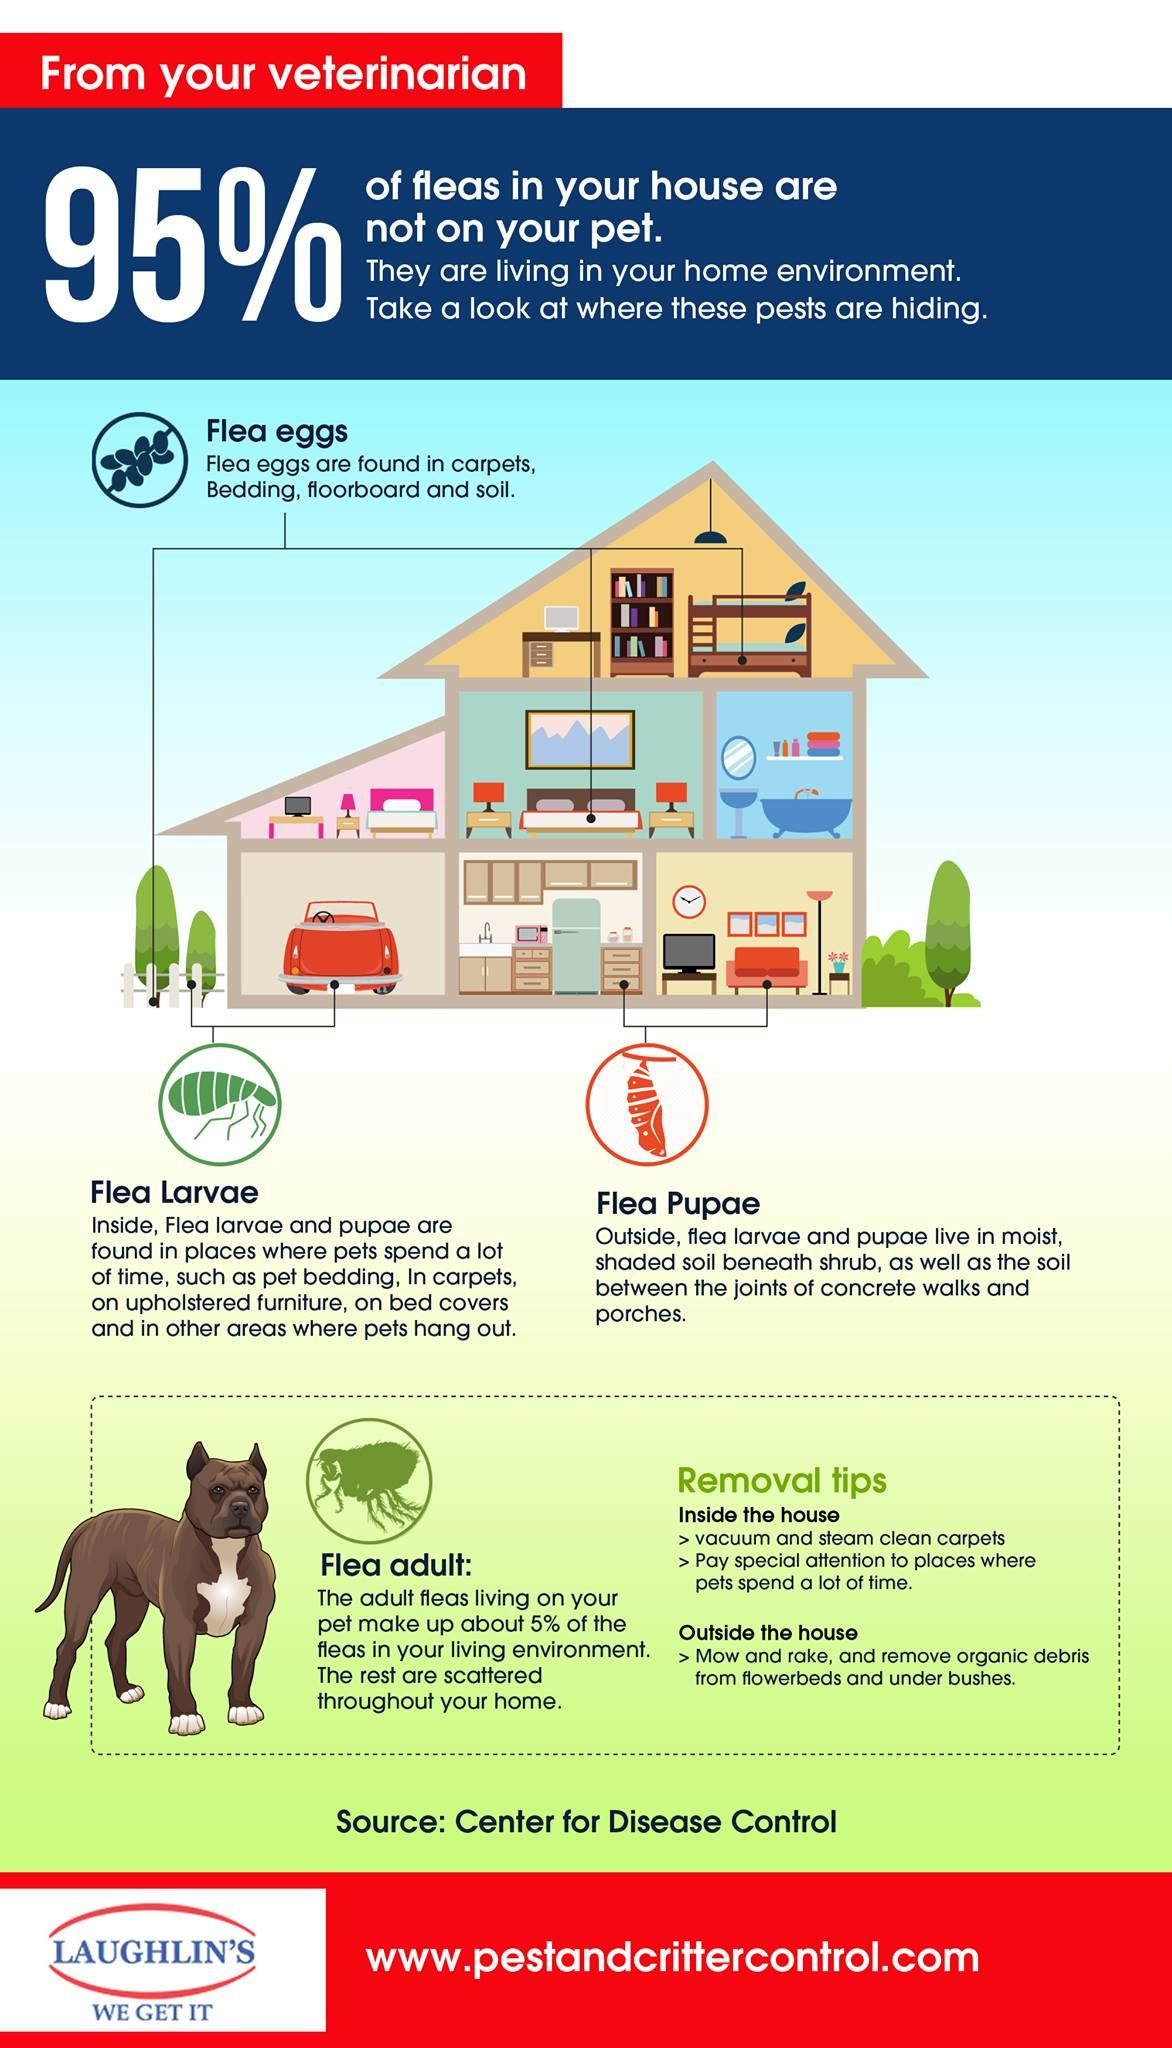 90ba3d7dc9a4ba0aeb4a841b54594e26 - How To Get Rid Of Fleas Organically In Your House